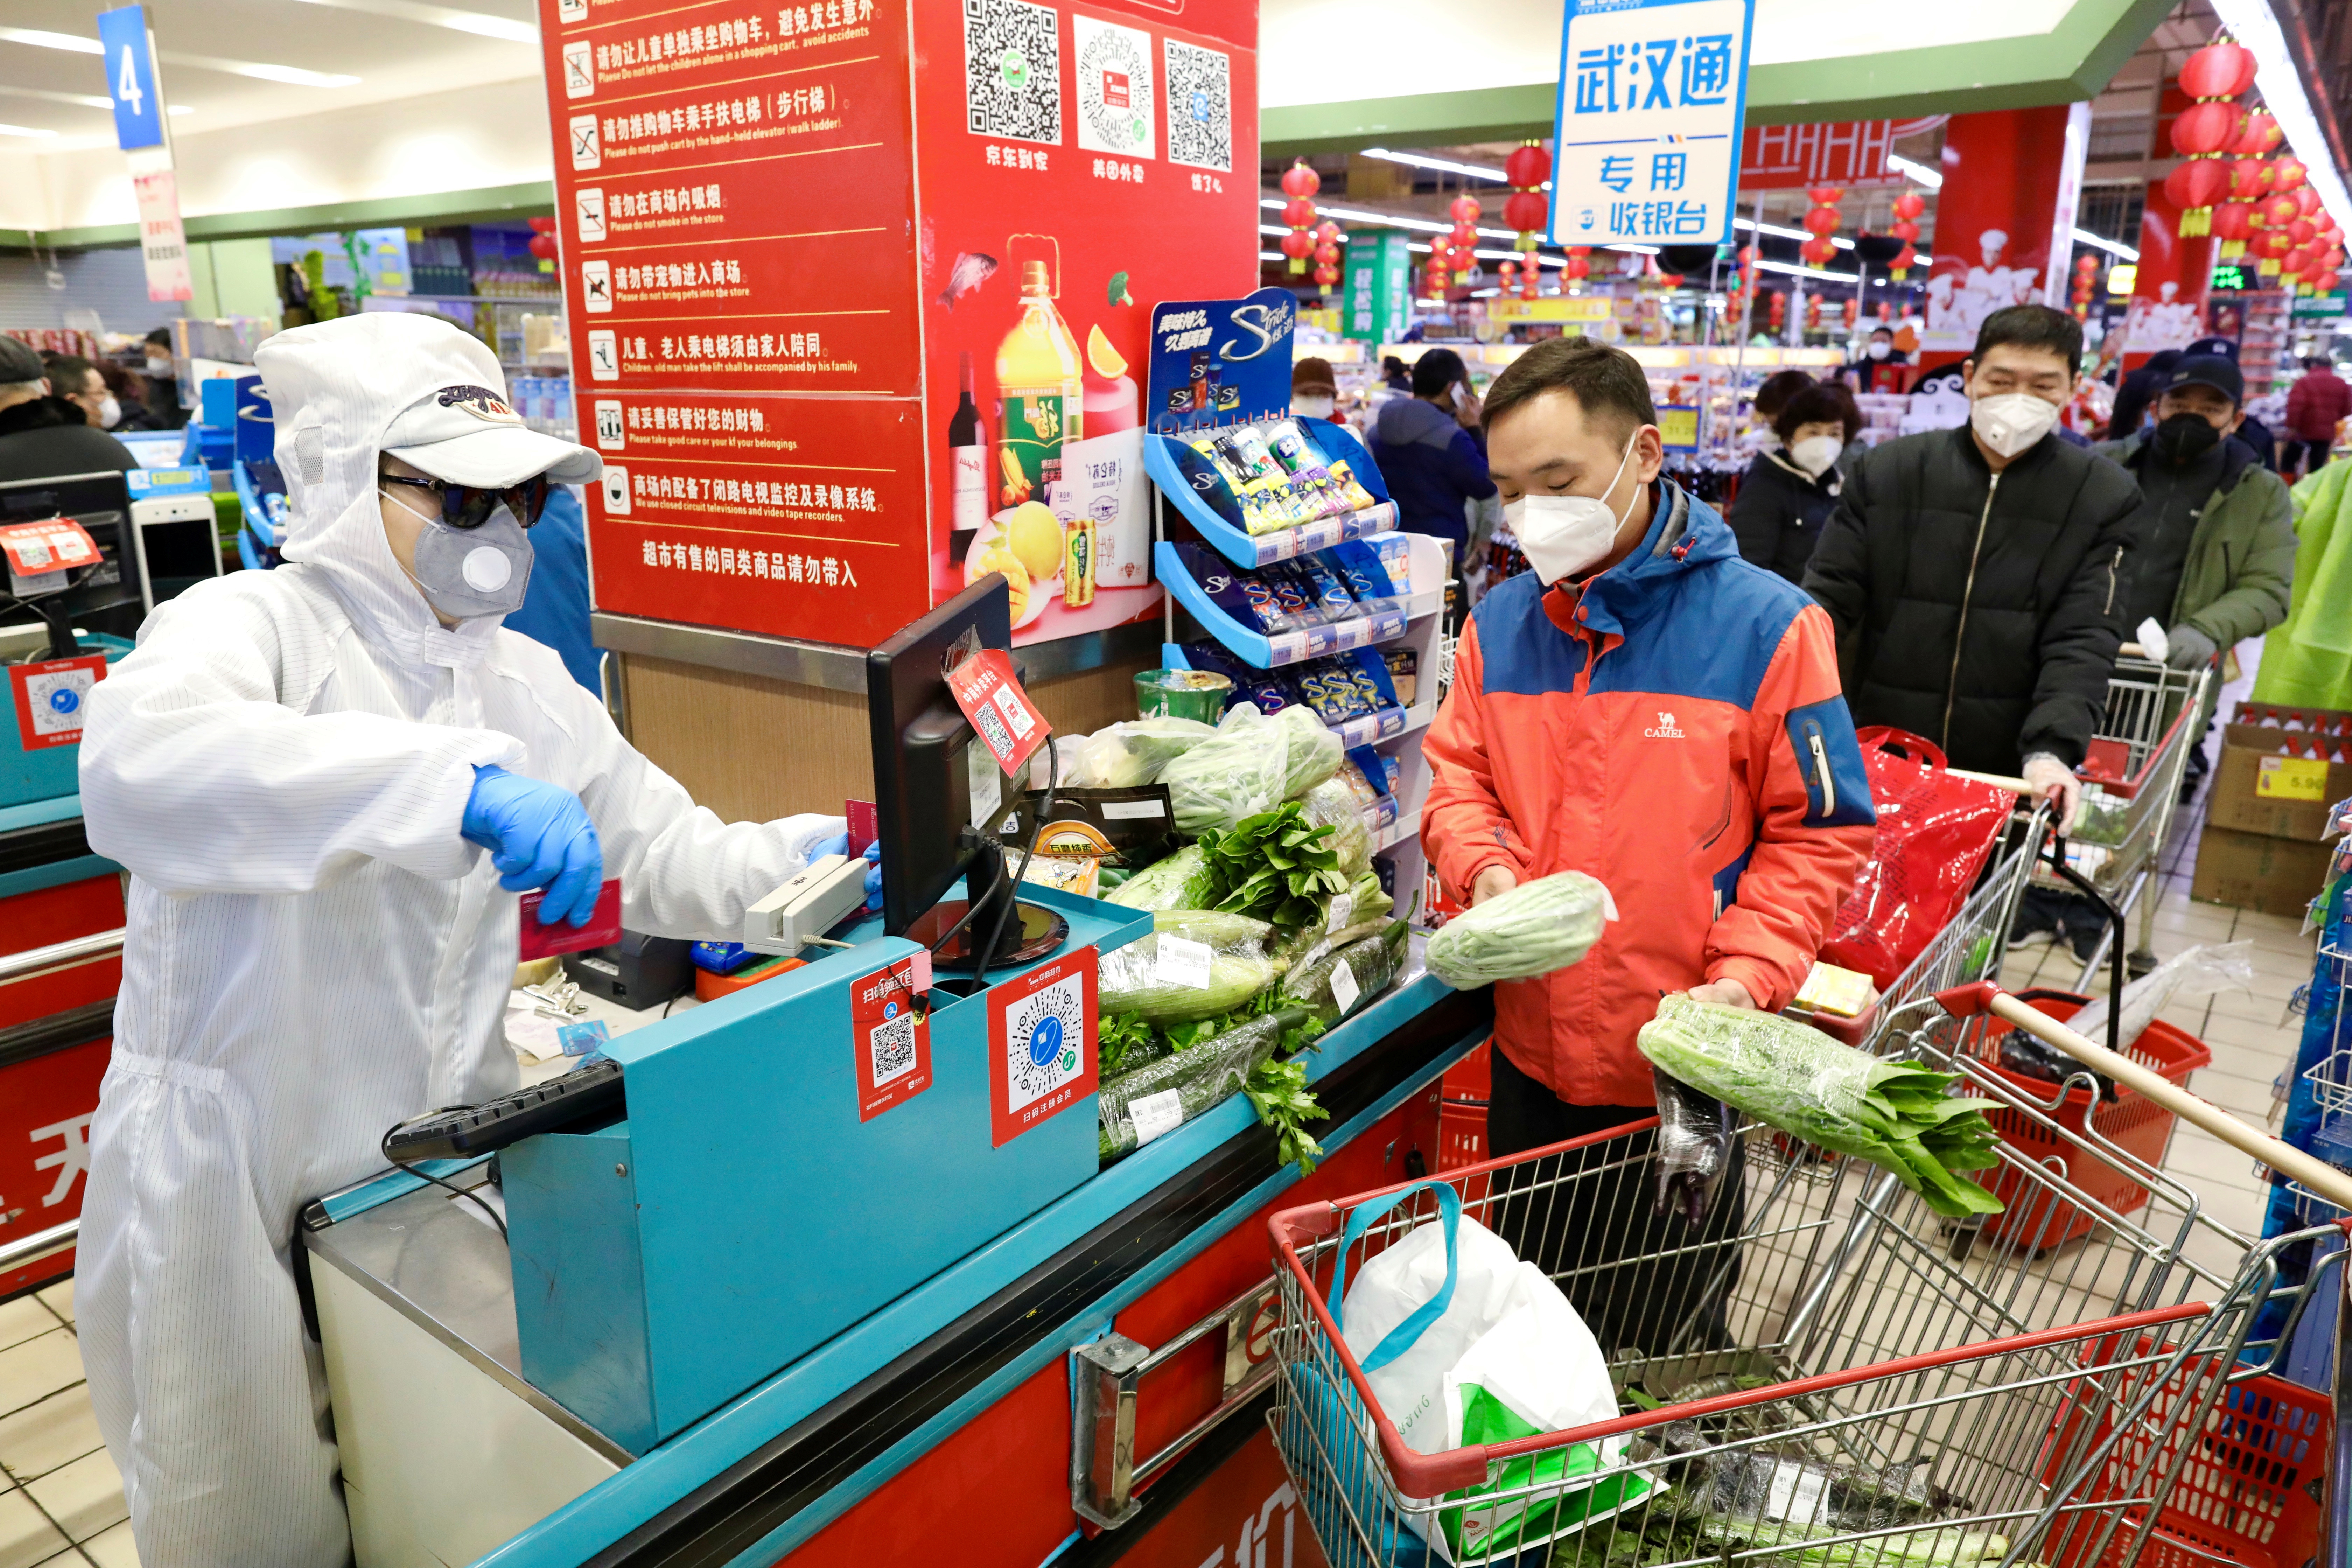 Over 5,000 new cases of coronavirus confirmed in single day in China